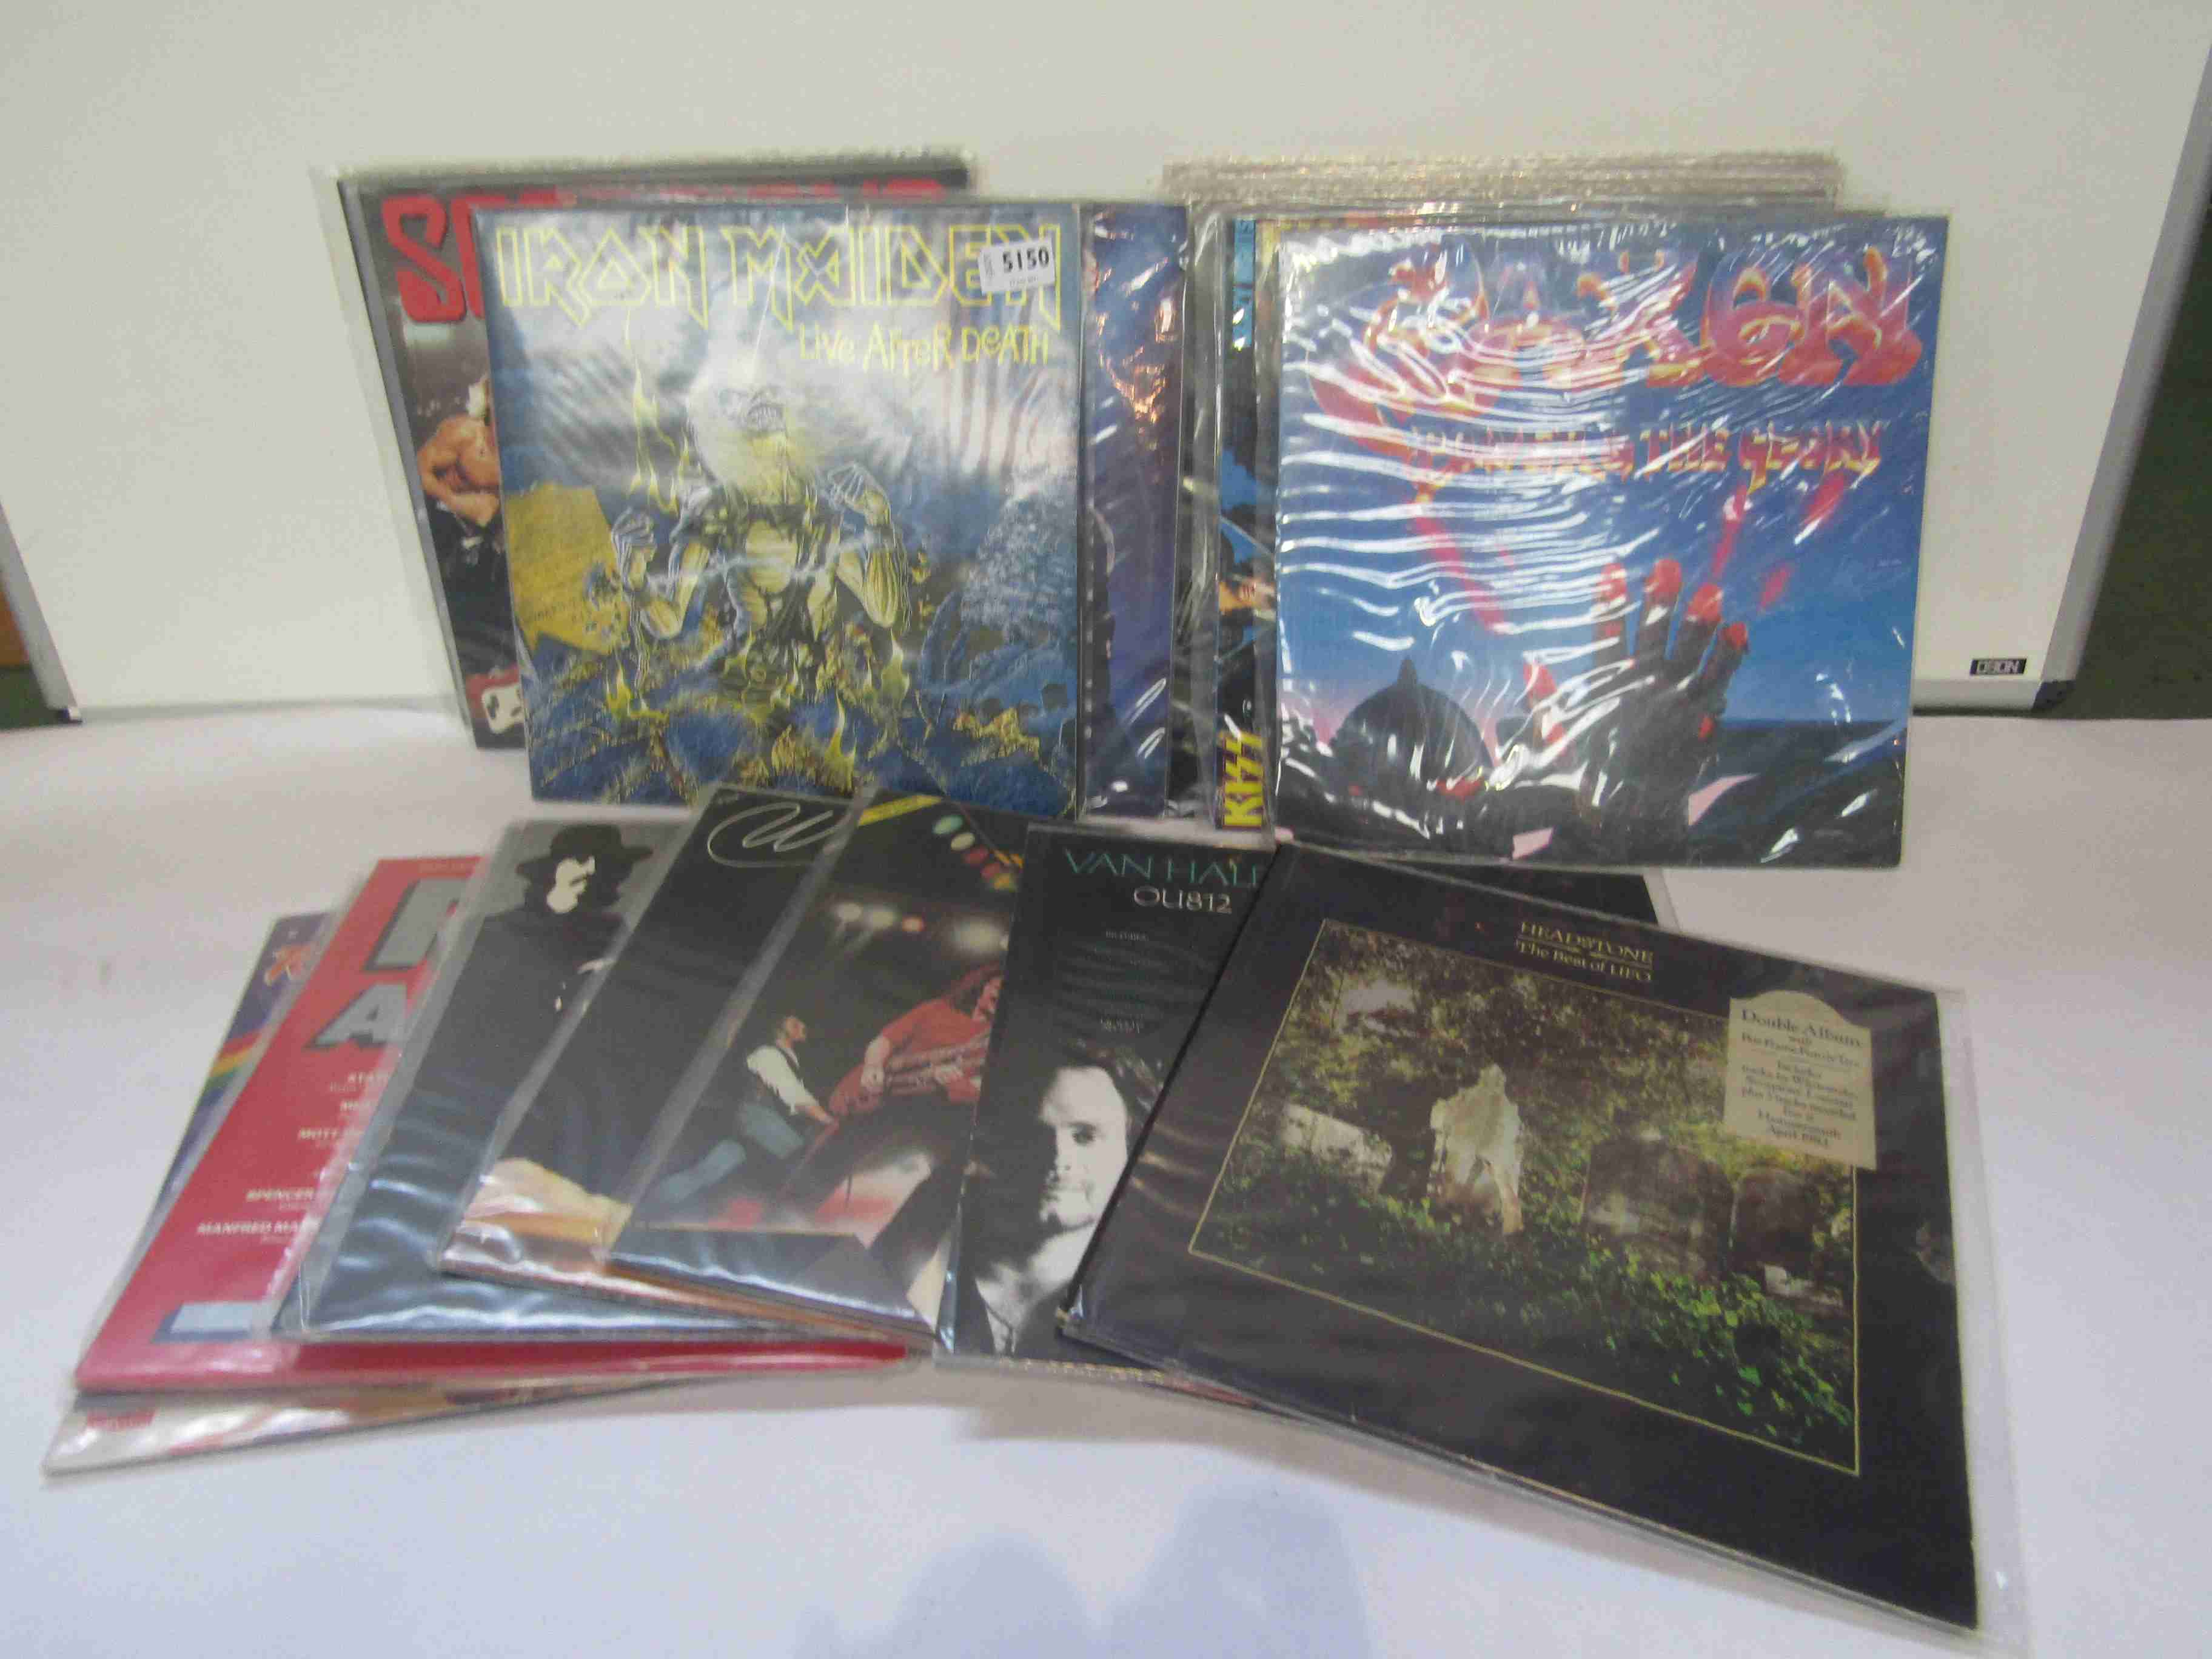 """A collection of Rock and Heavy Metal LPs and 12"""" singles including Iron Maiden, Saxon,"""